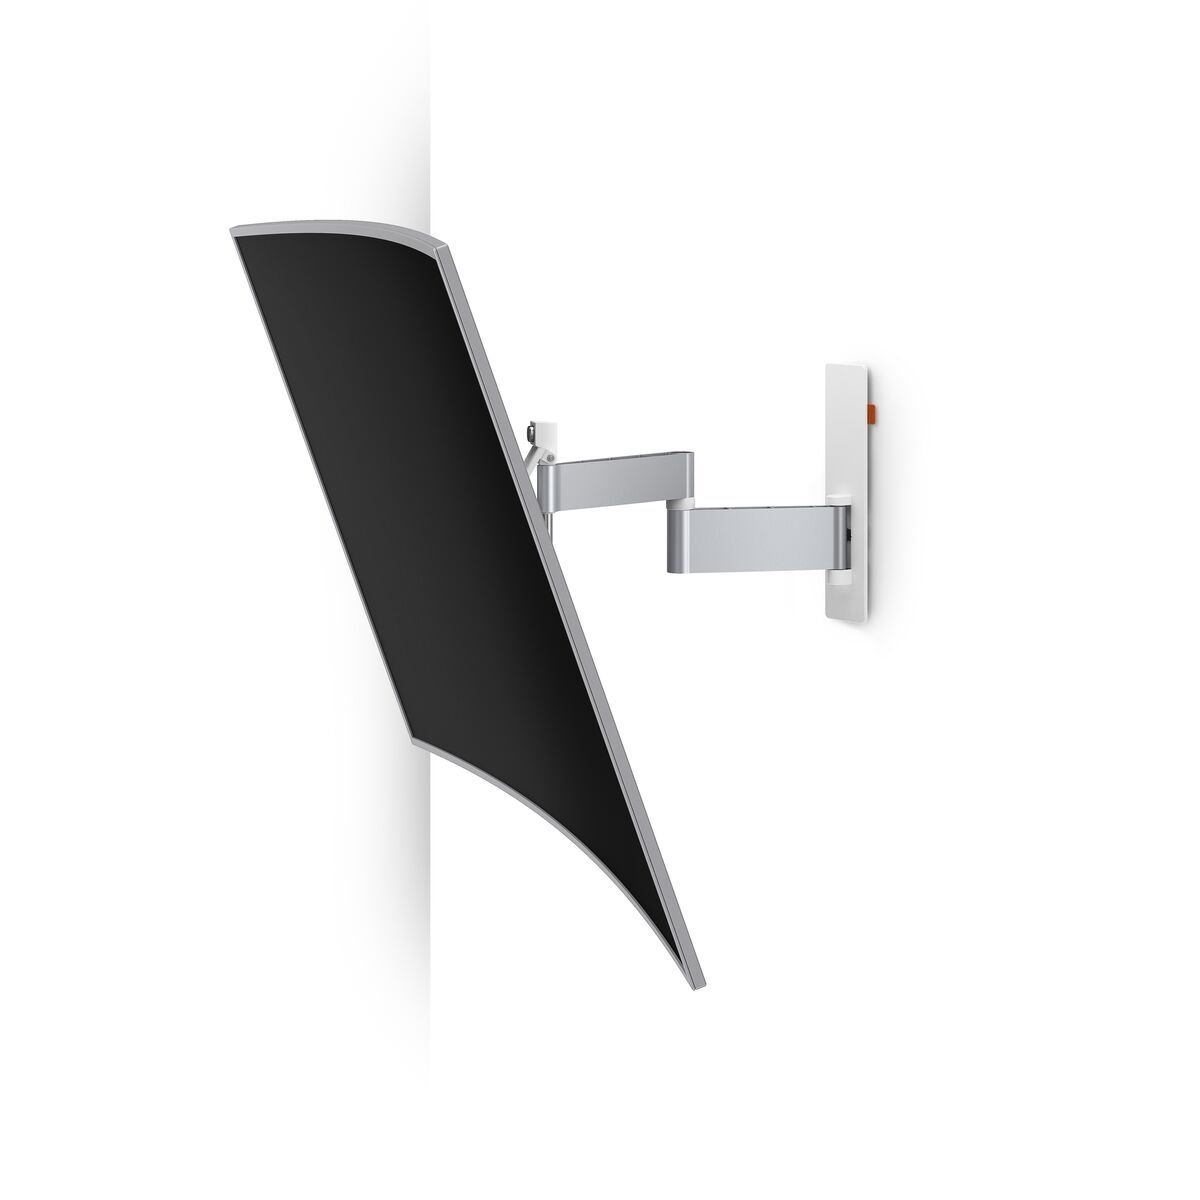 Vogel's WALL 2345 Full-Motion TV Wall Mount (white) - Suitable for Full motion (up to 180°) - Suitable for Tilt up to 20° - Suitable for Application